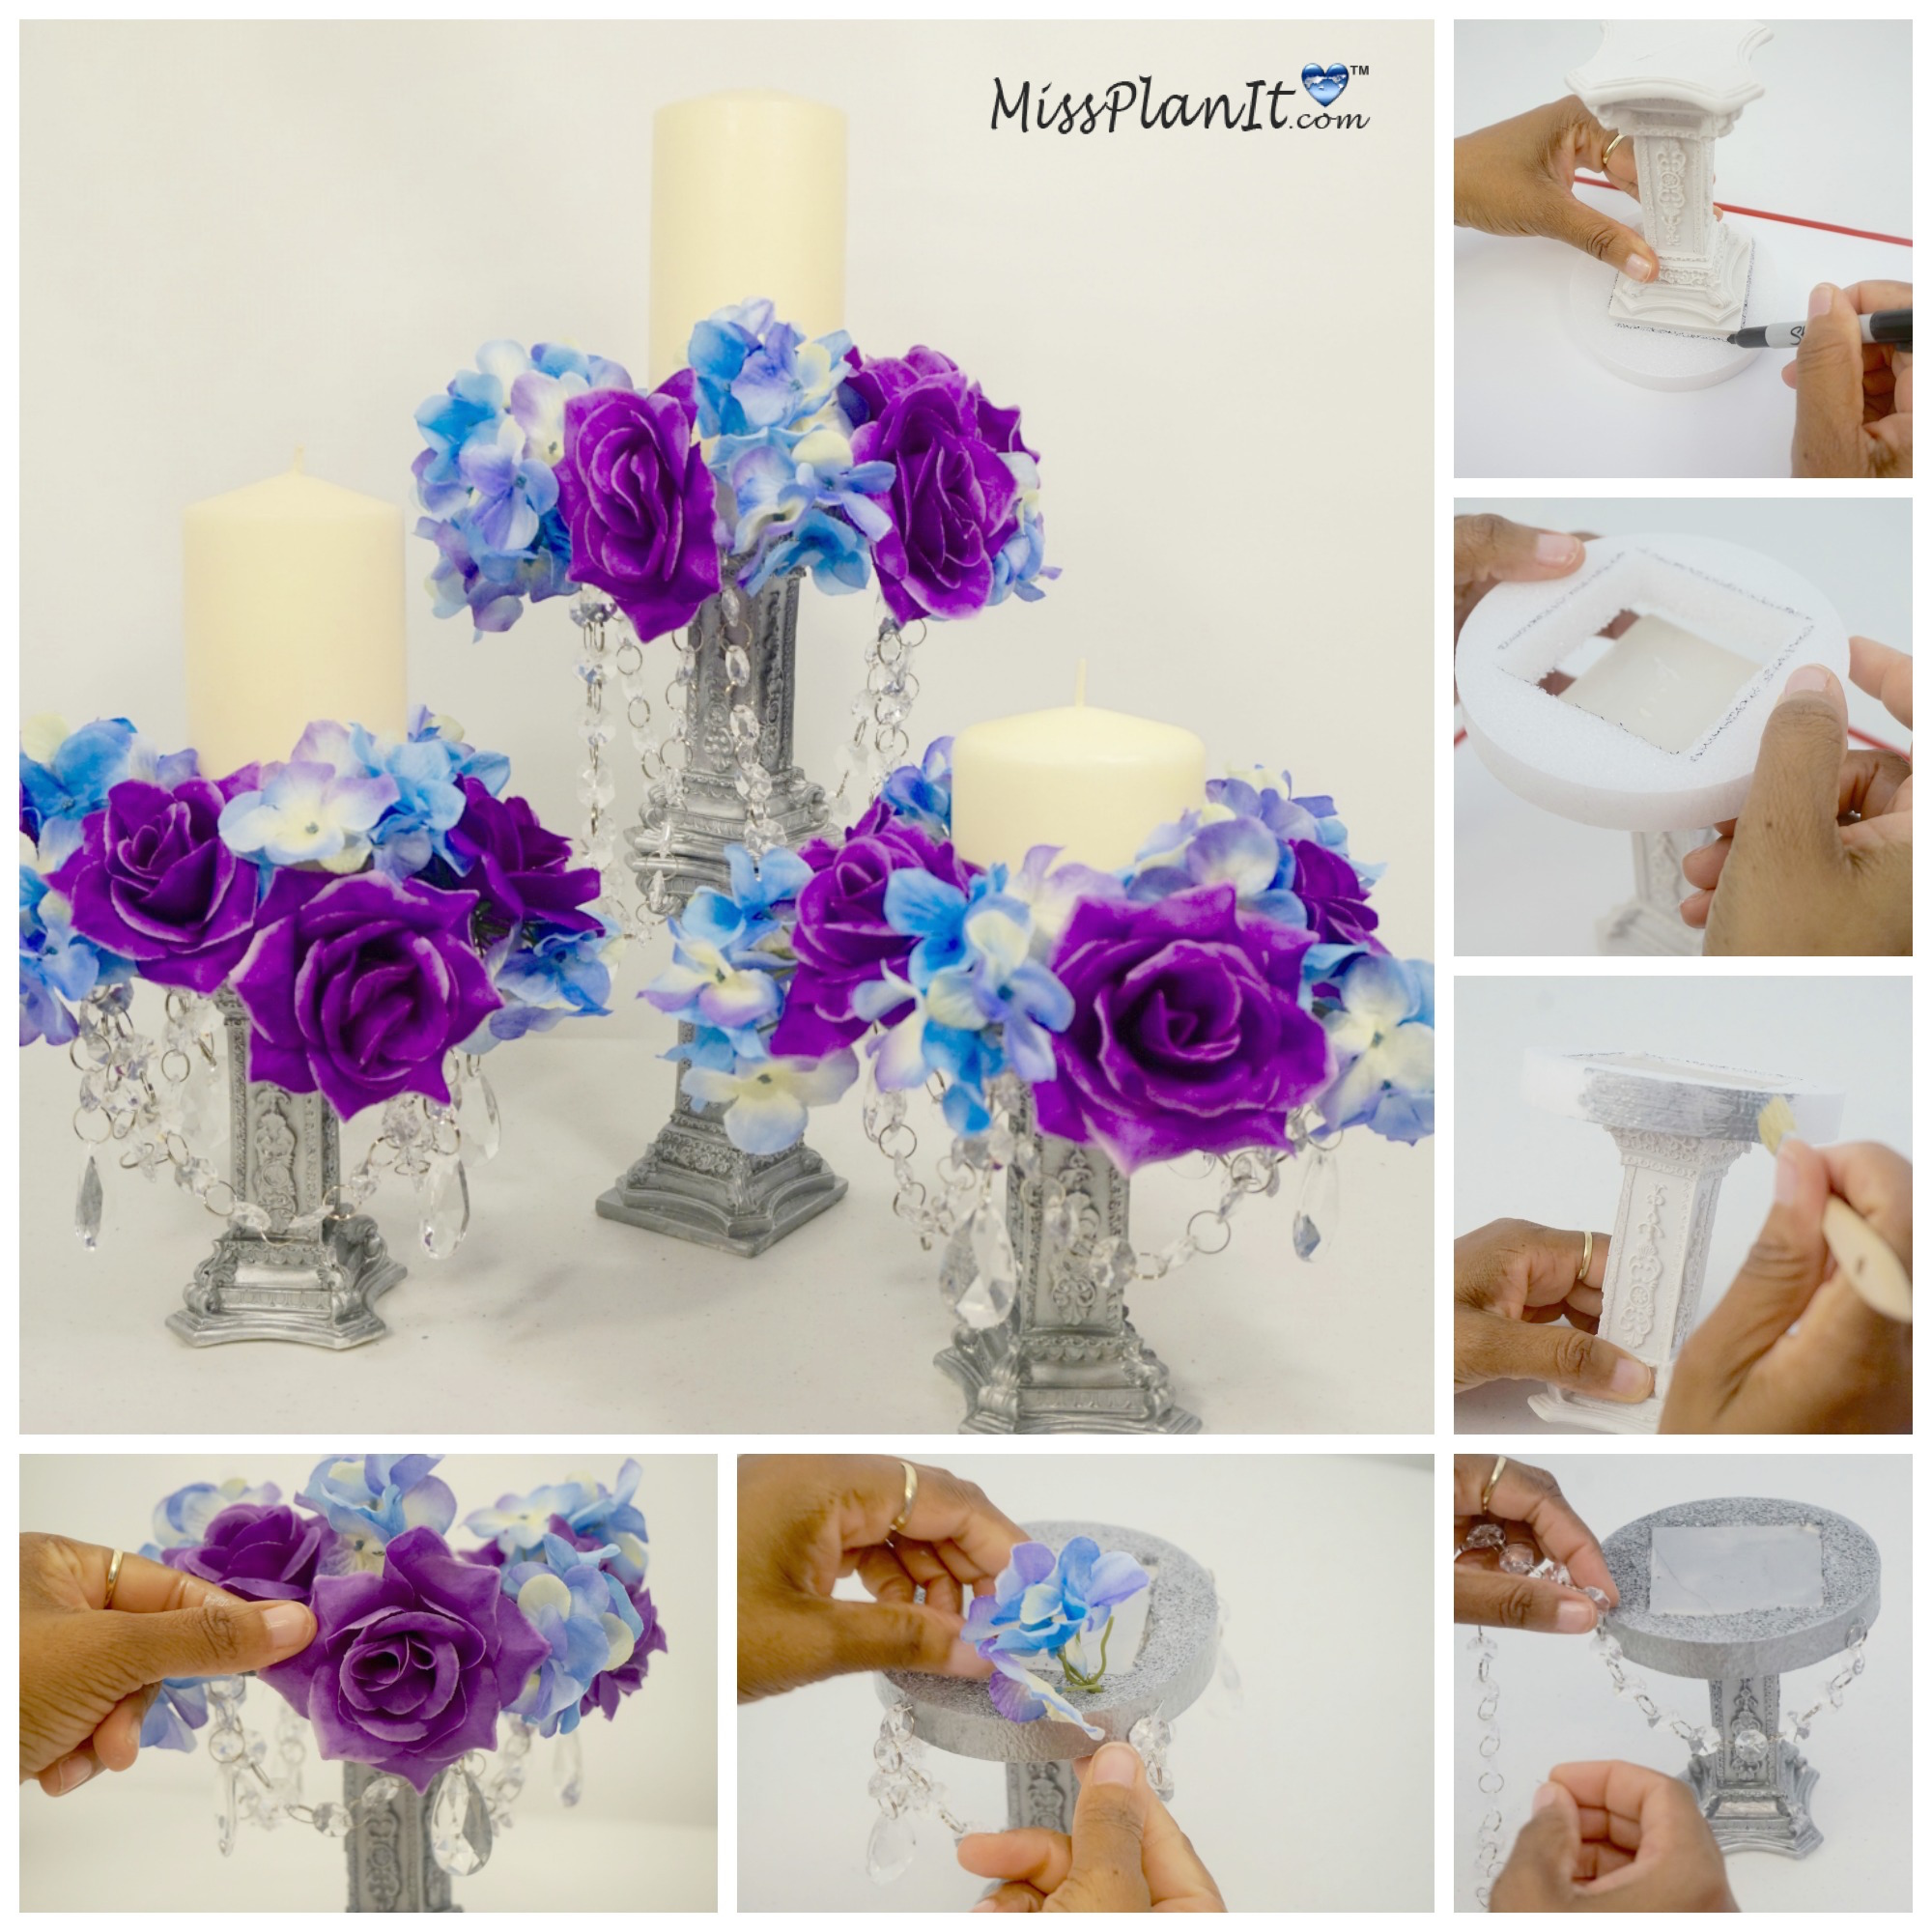 Diy chandelier centerpiece join us this week as we create this elegant yet inexpensive diy centerpiece perfect for any wedding event or dining room table aloadofball Images